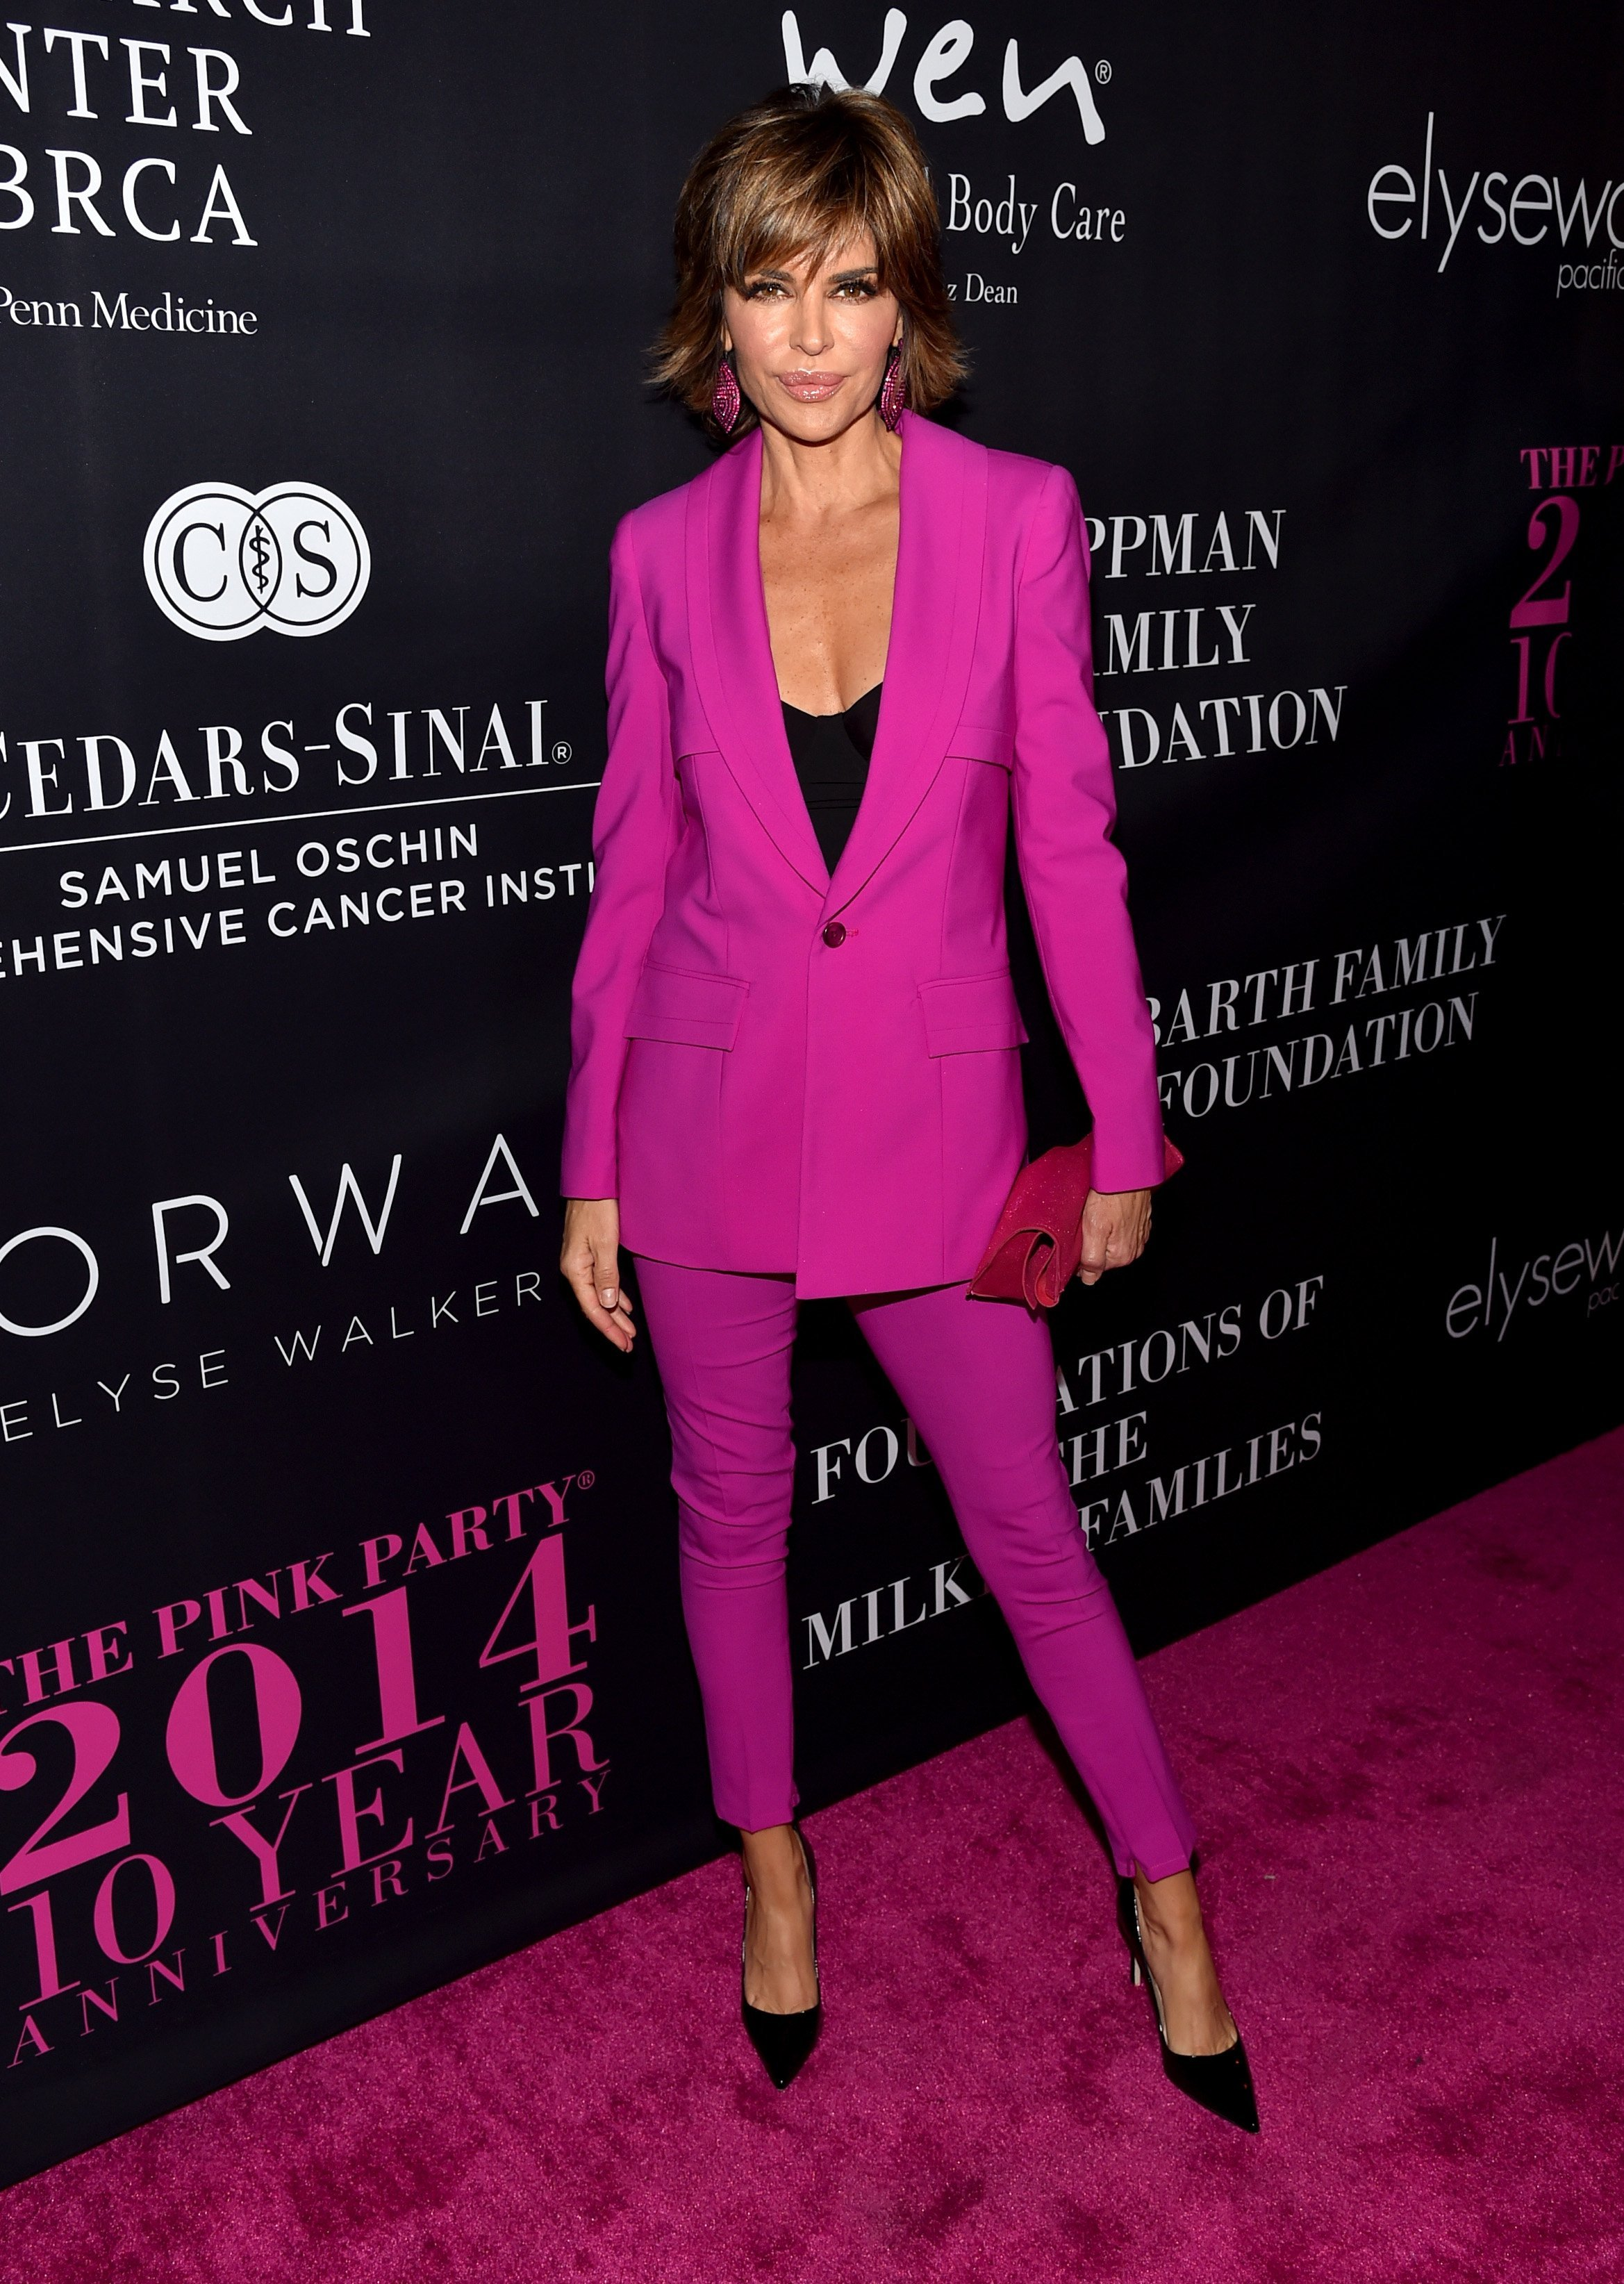 Lisa Rinna on October 18, 2014 in Santa Monica, California | Photo: Getty Images